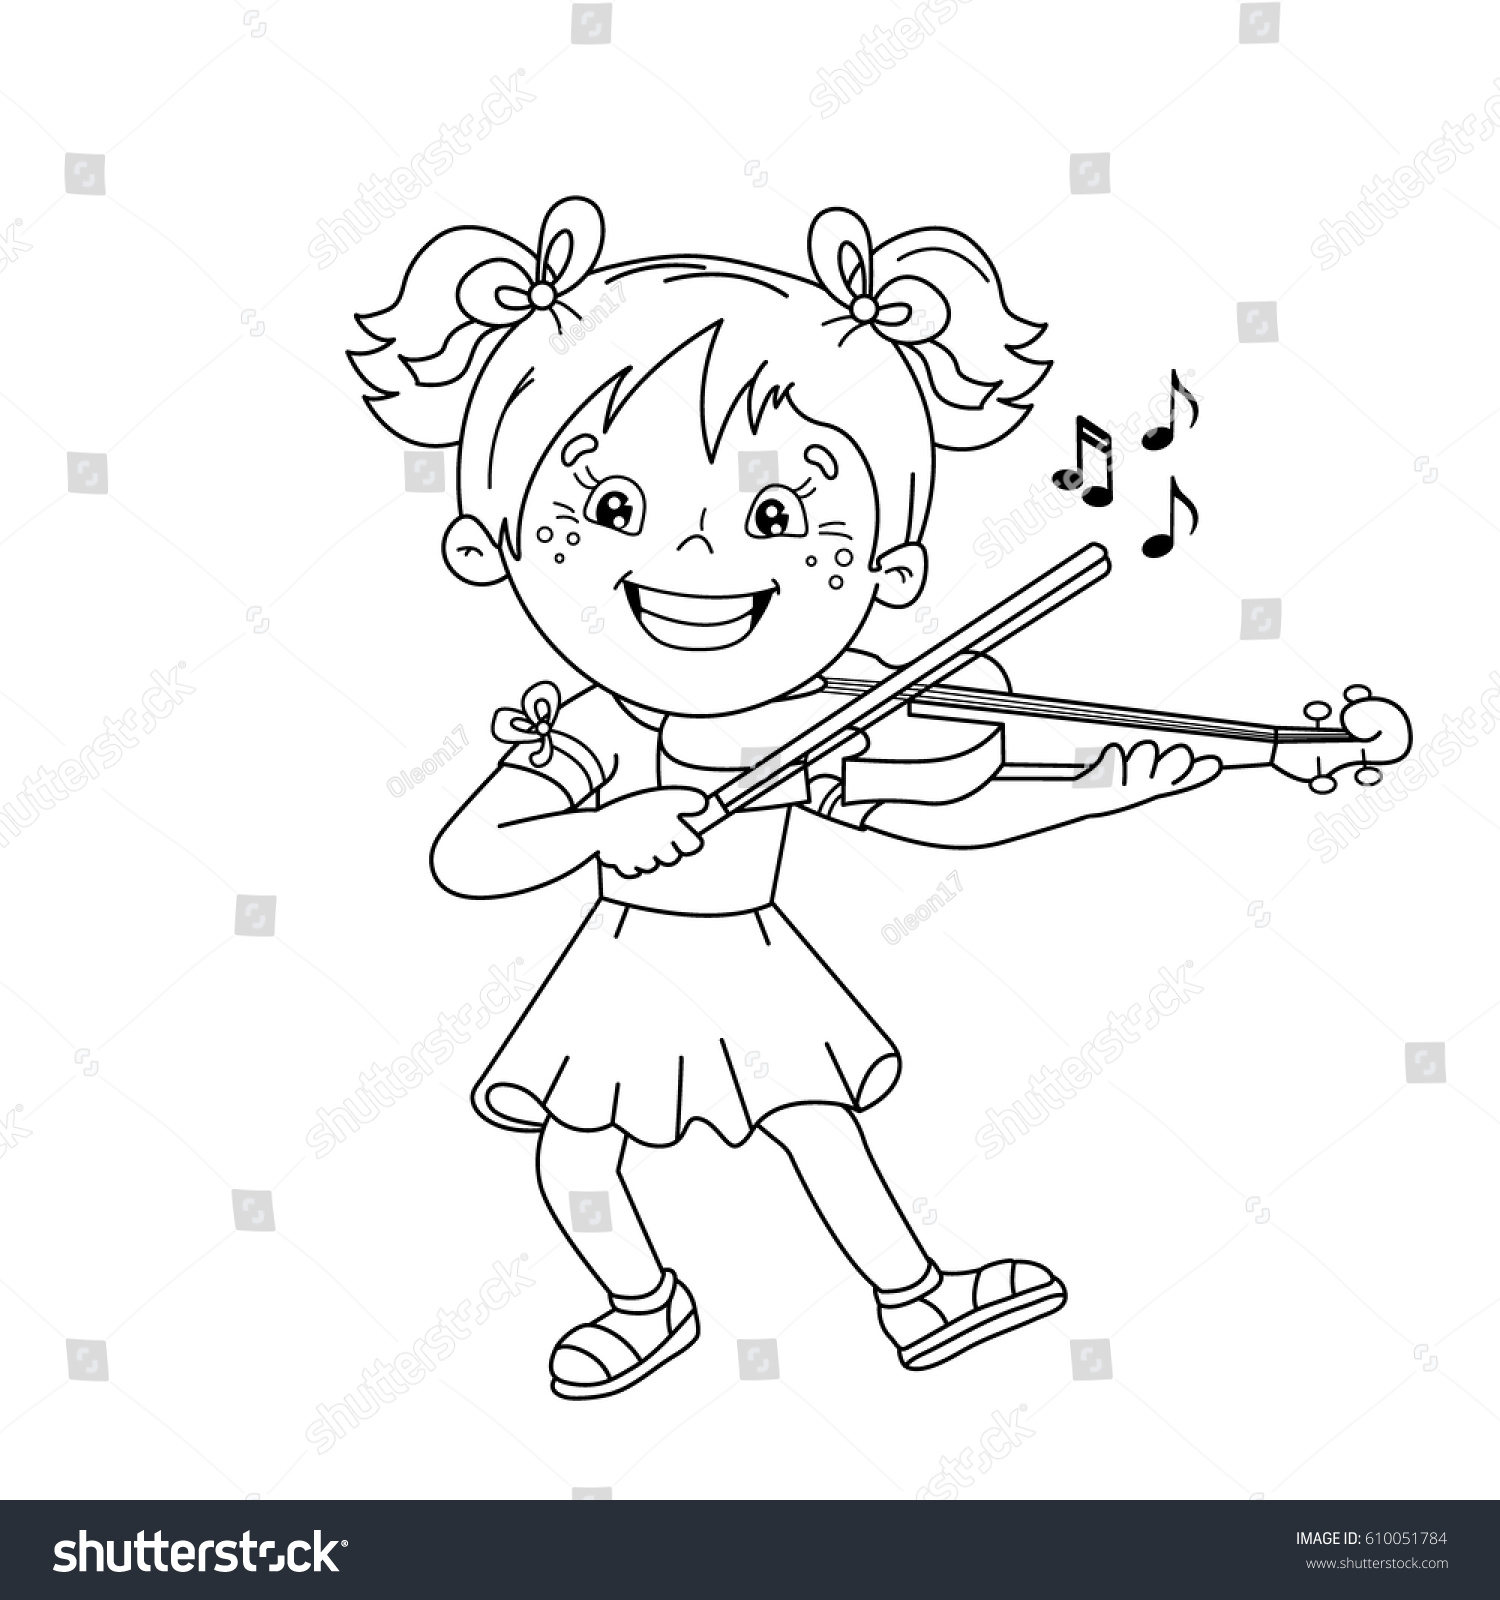 coloring page outline cartoon playing stock vector 610051784